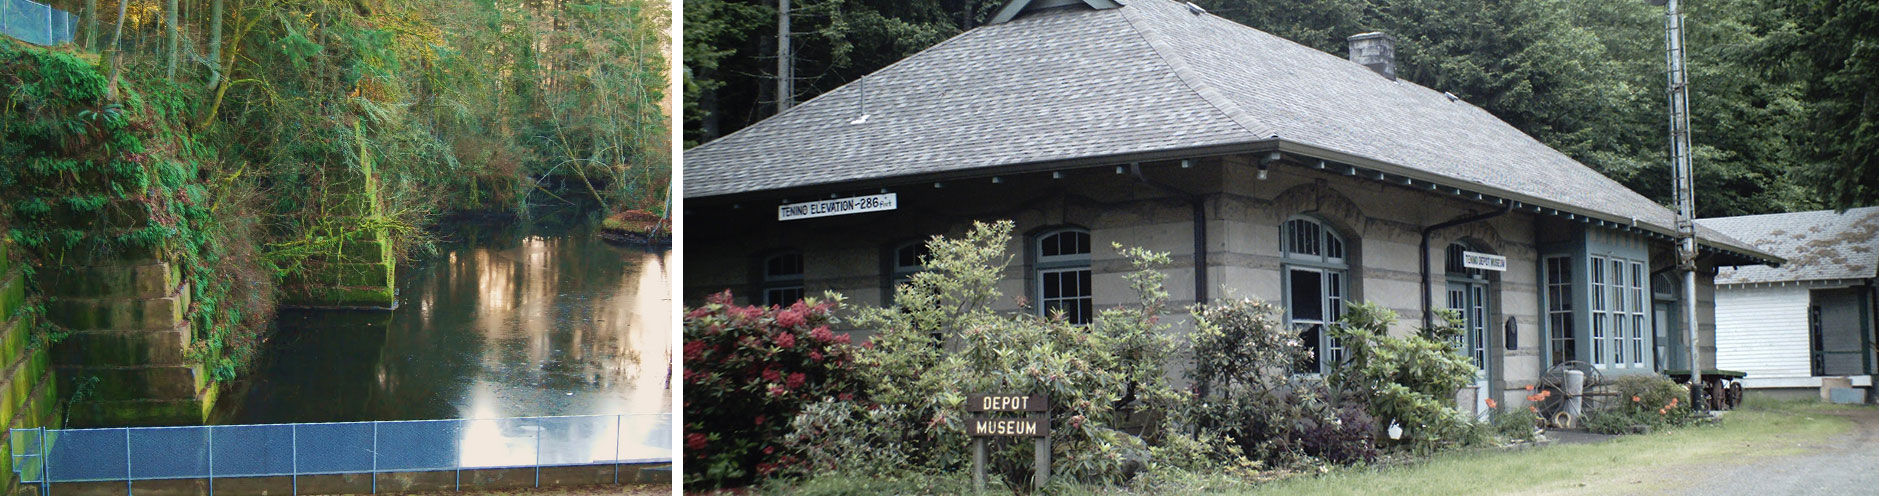 Train Depot Museum and Pond